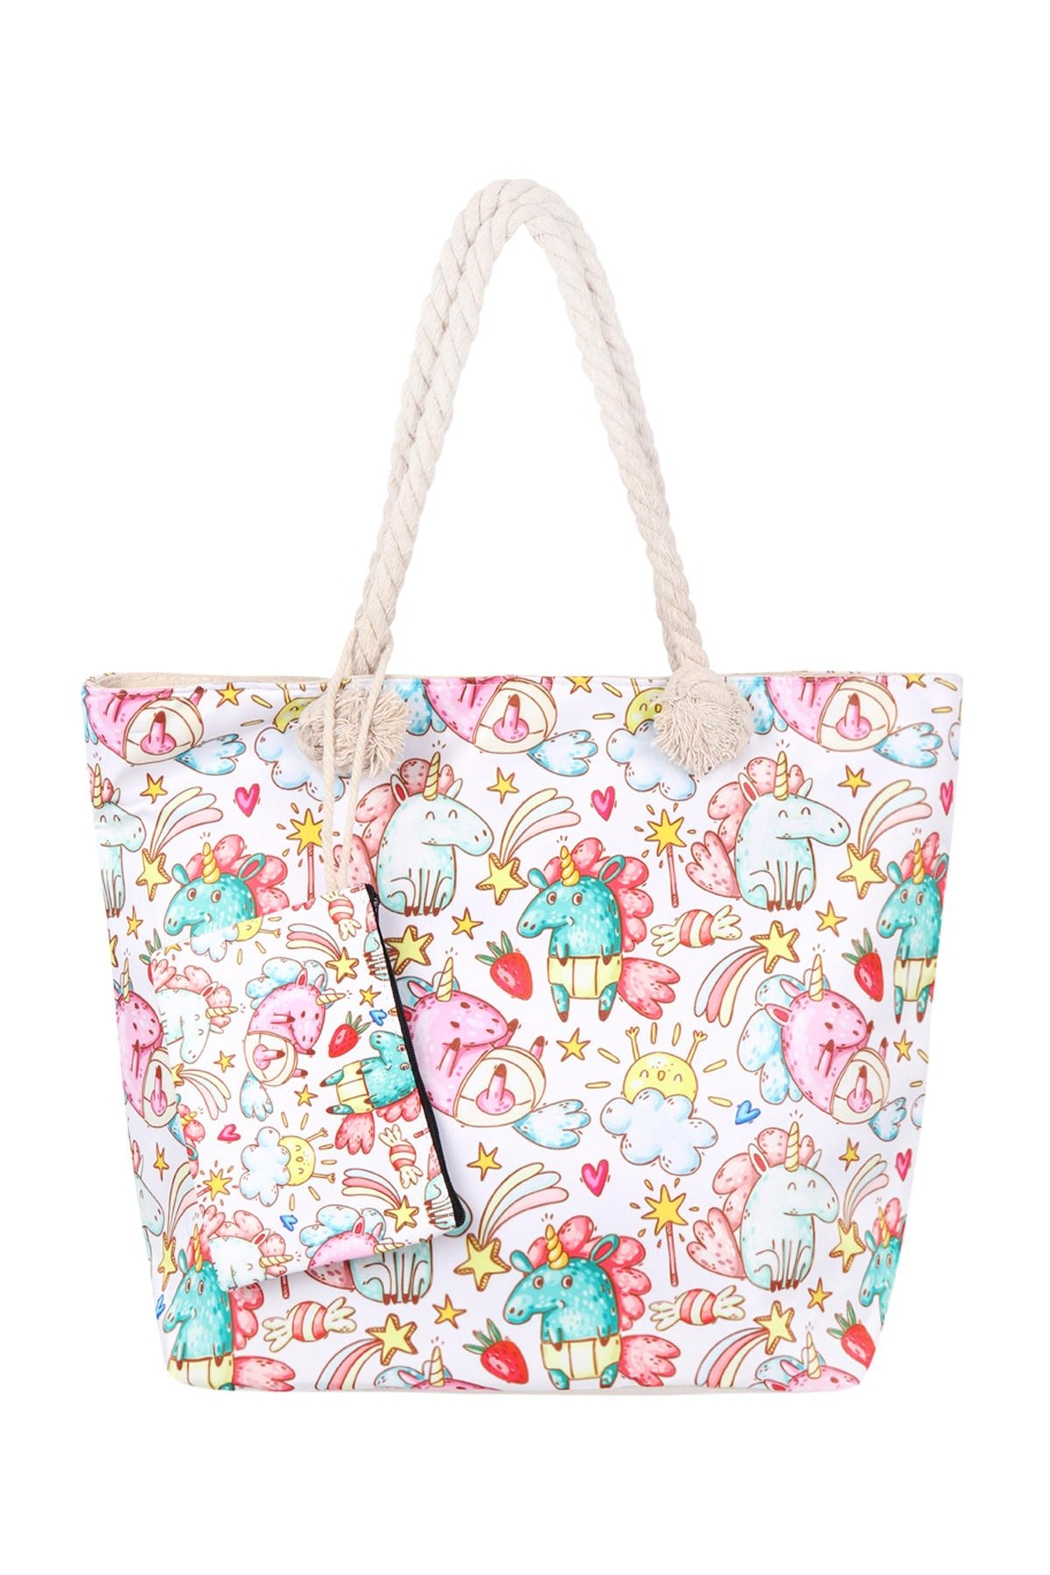 Riah Fashion Unicorn-Digital-Printed-Tote-Bag-W/-Matching-Wallet - Main Image